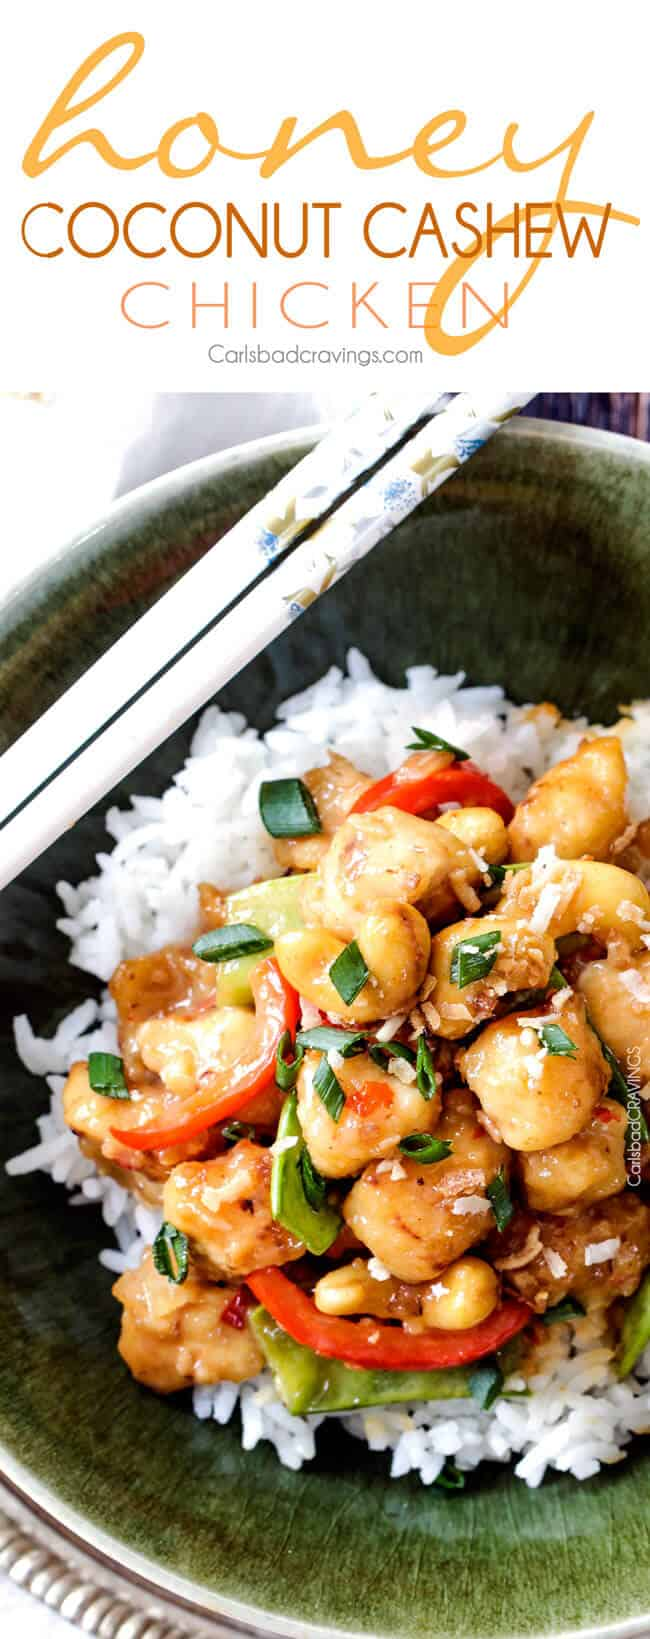 Honey Coconut Cashew Chicken